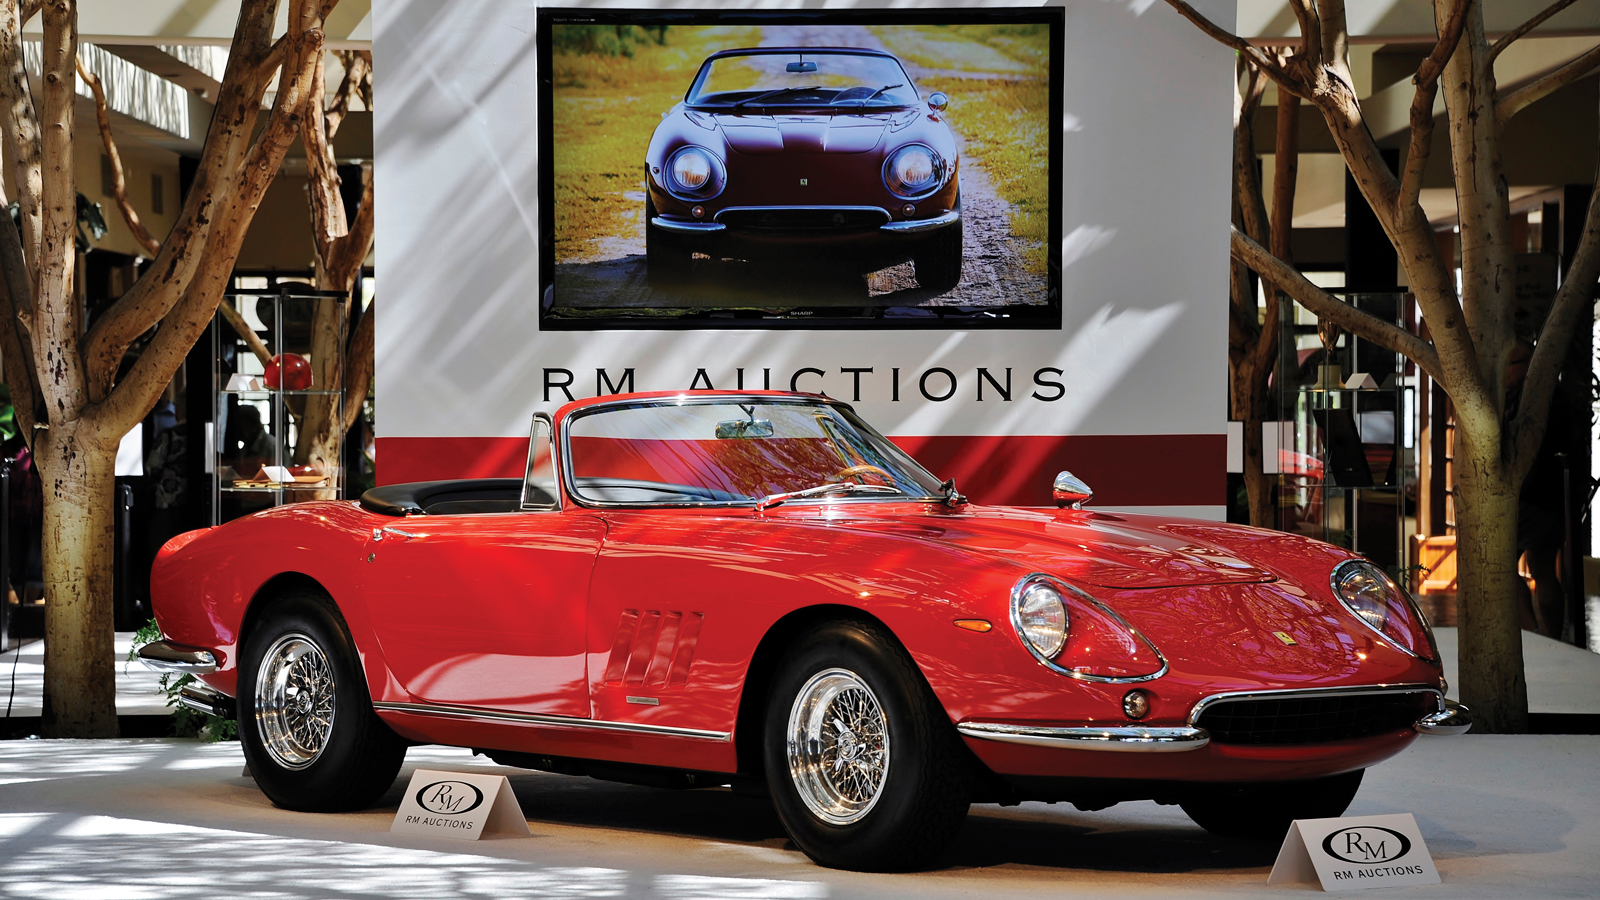 m13-auto-lot-225-1967-ferrari-GTB4S-N.A.R.T.-credit-courtesy-of-RM-Auctions